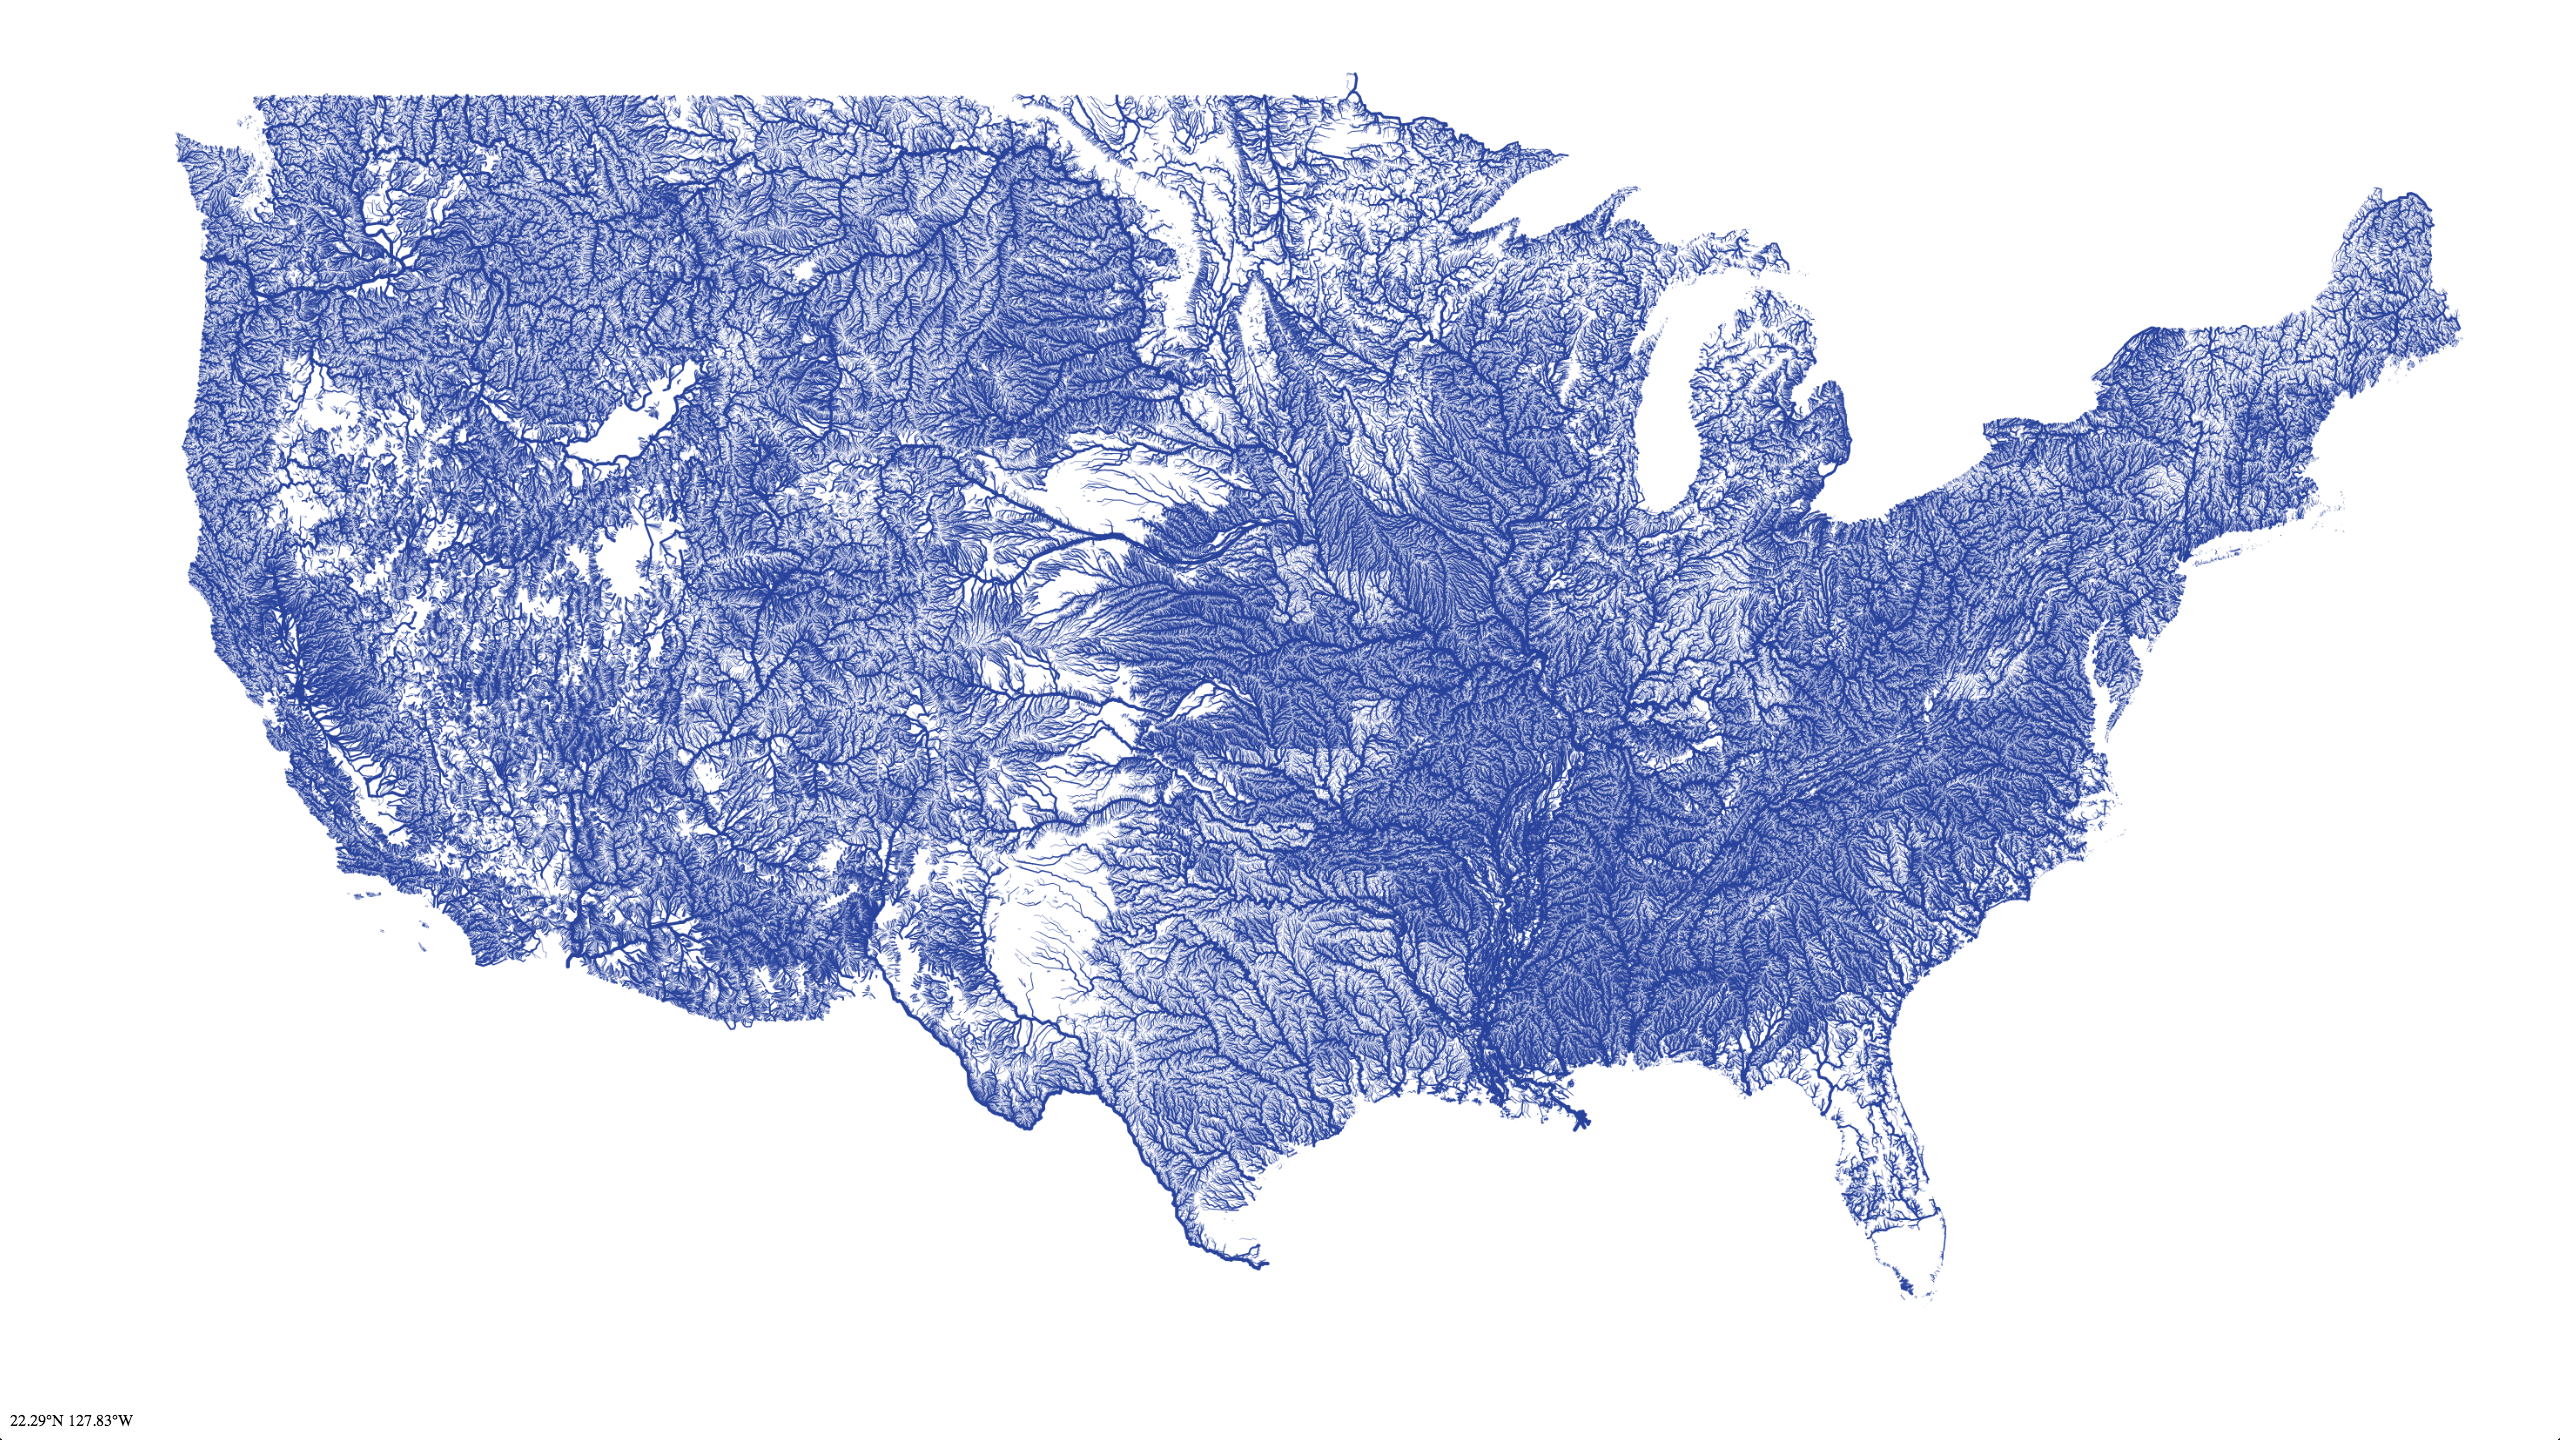 High-resolution vector map of all rivers in the contiguous 48 states.